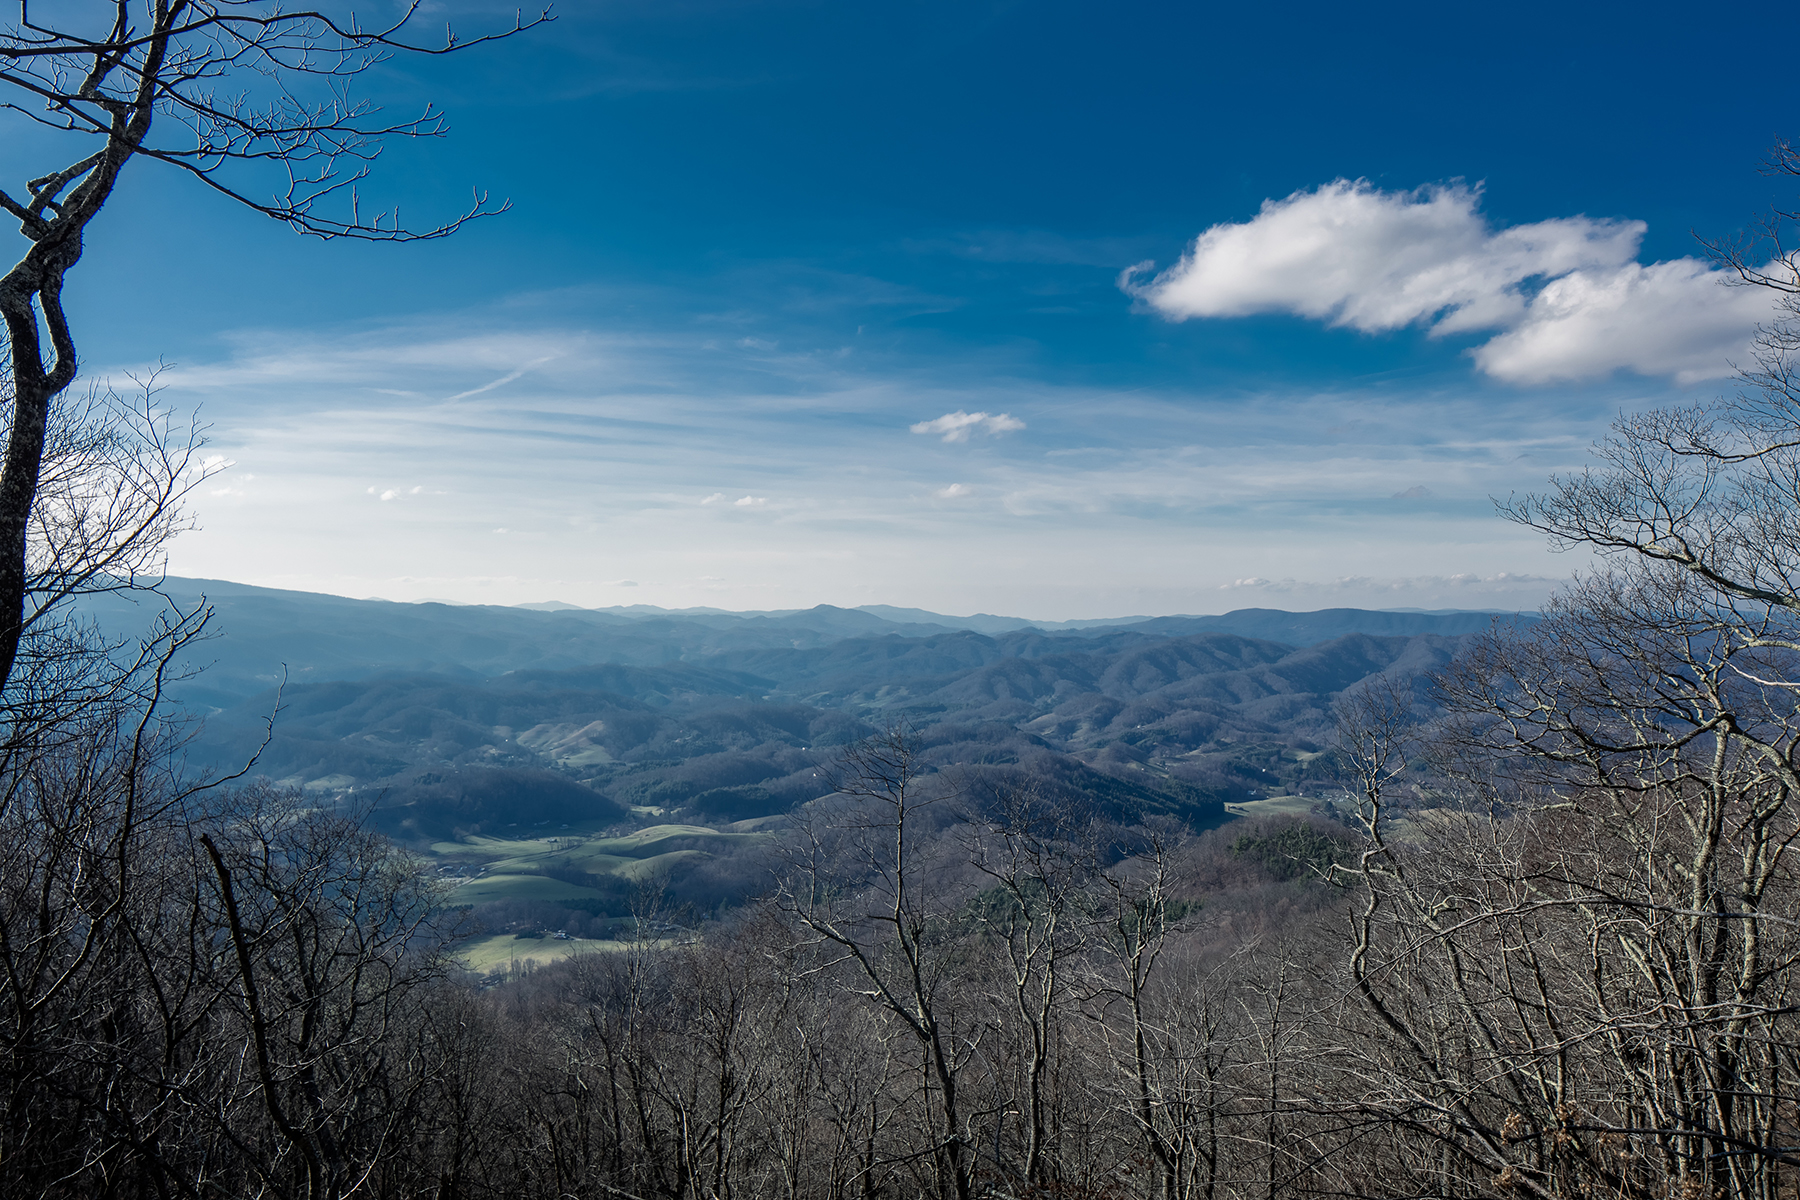 Land for Sale at Boone - Woodland Springs Lot 26 Saddle Road Rd Boone, North Carolina, 28607 United States